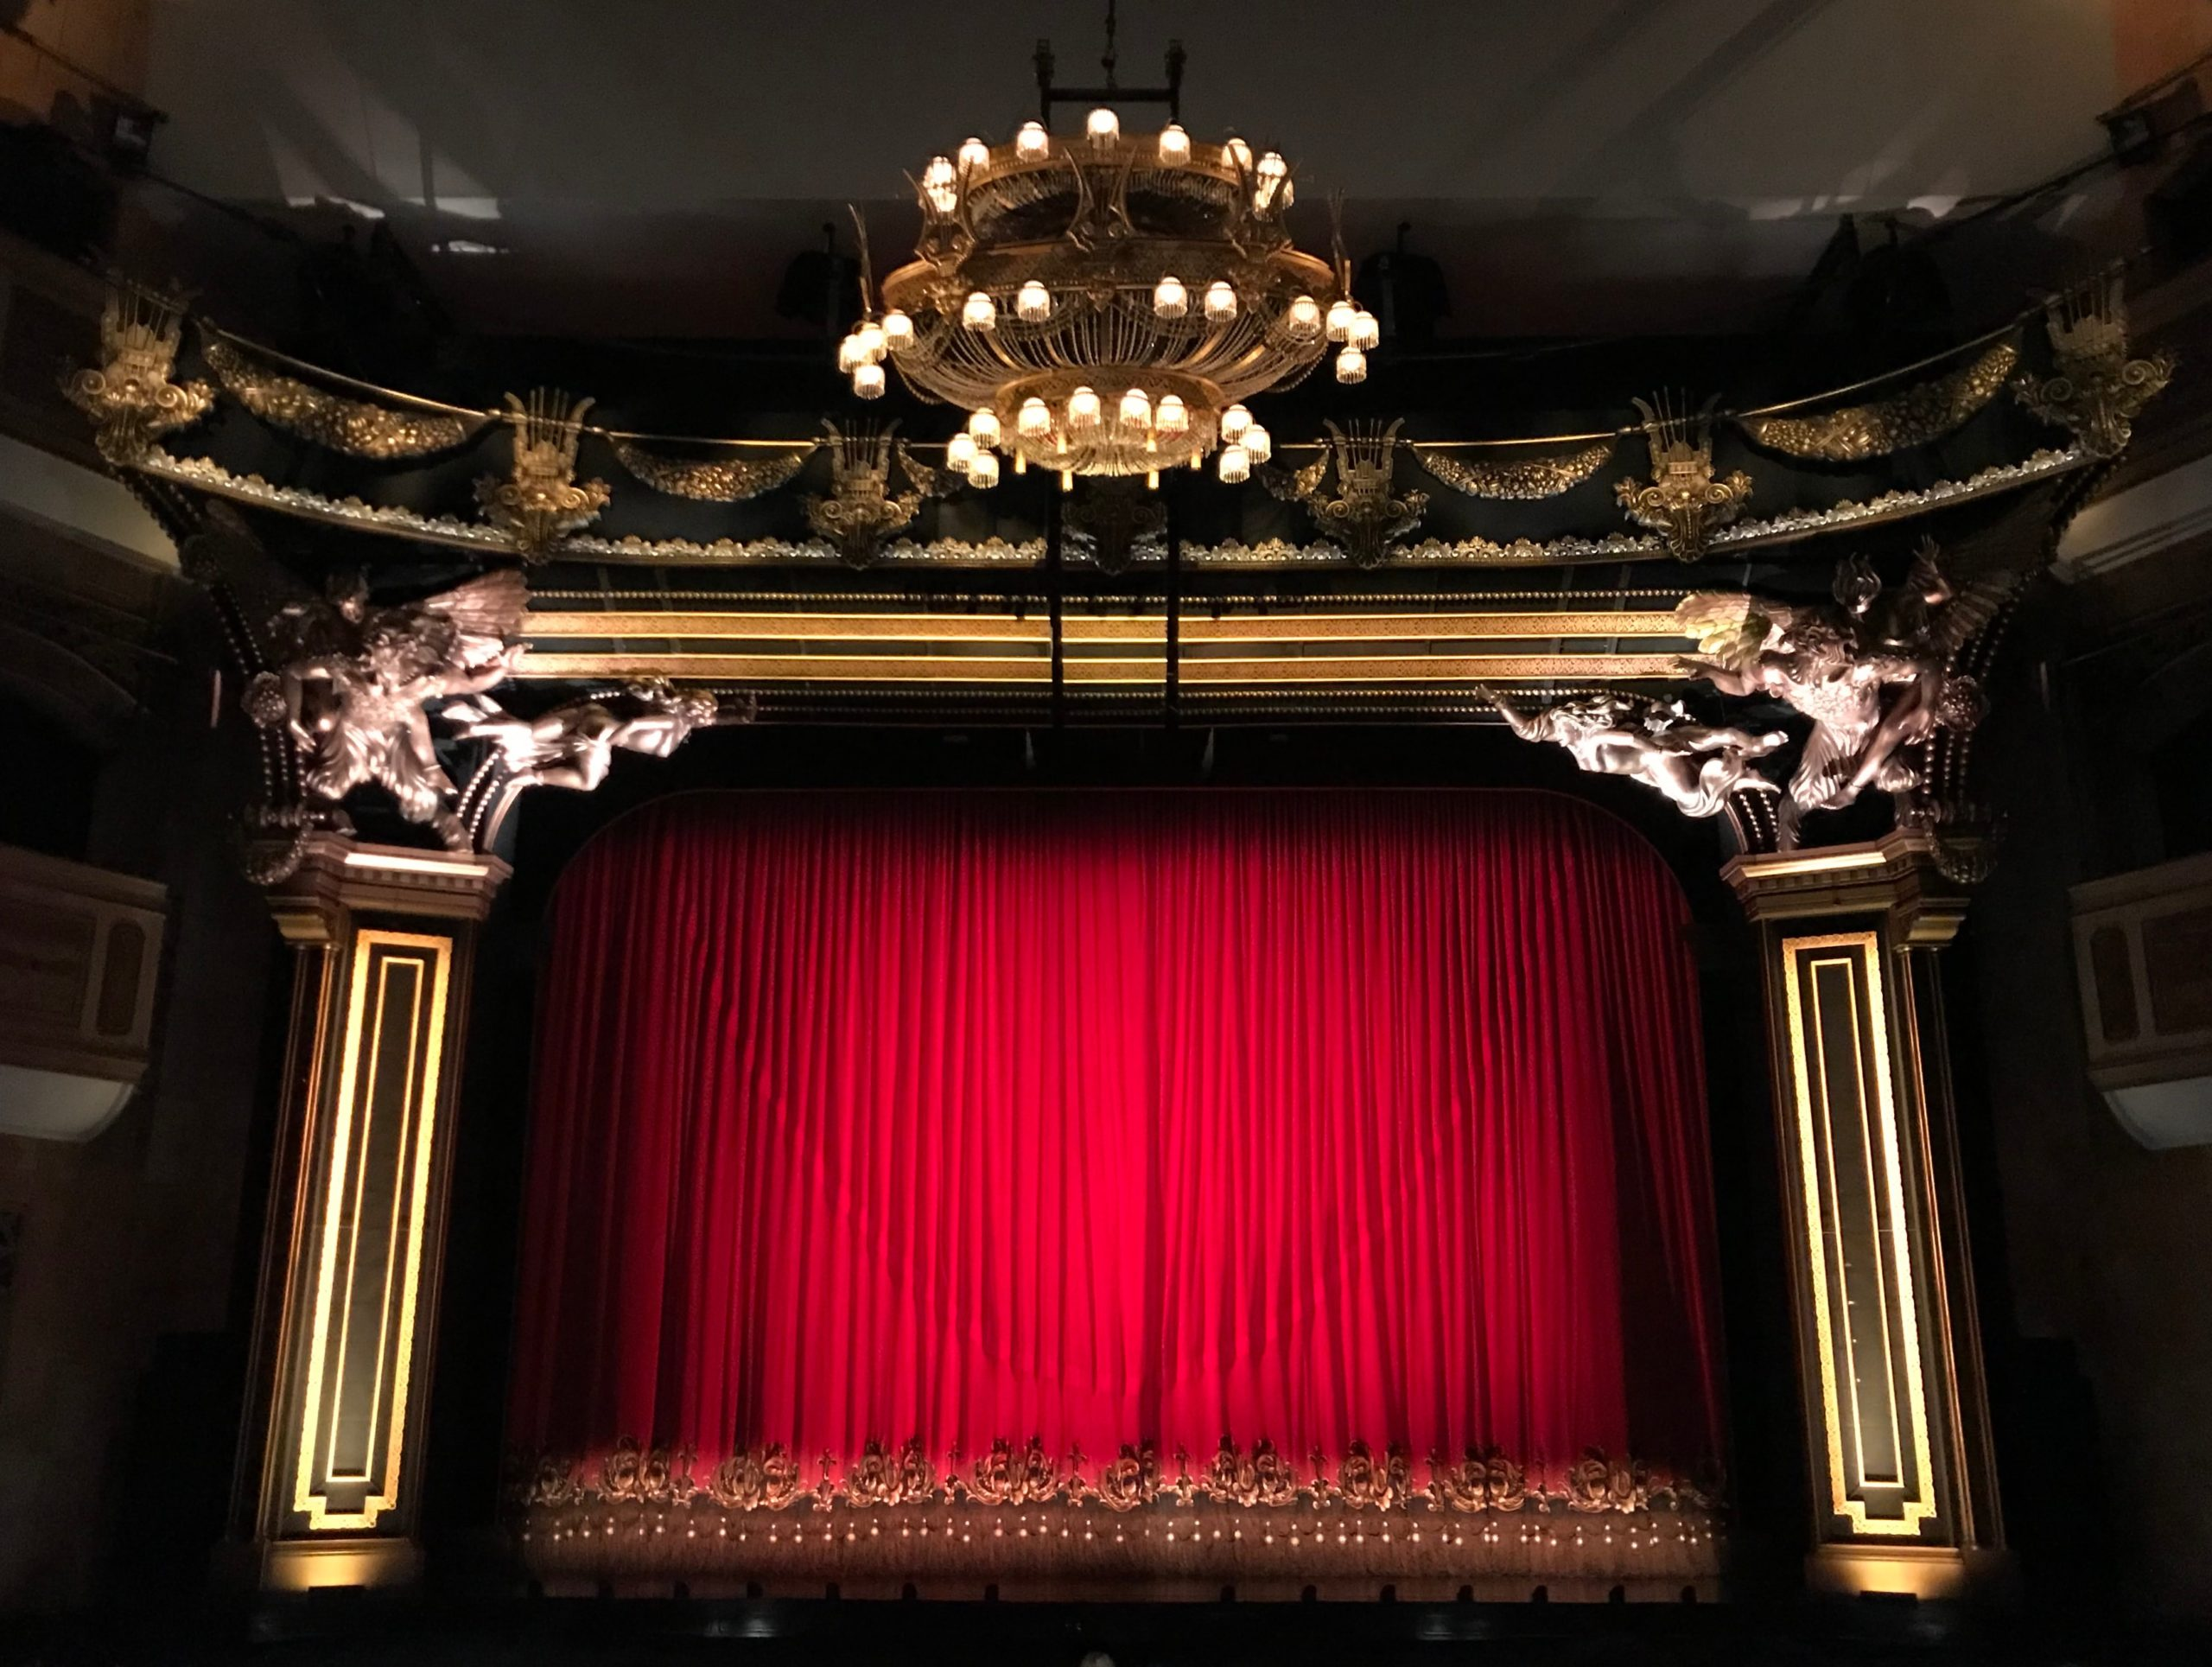 A theater stage with the curtain closed.